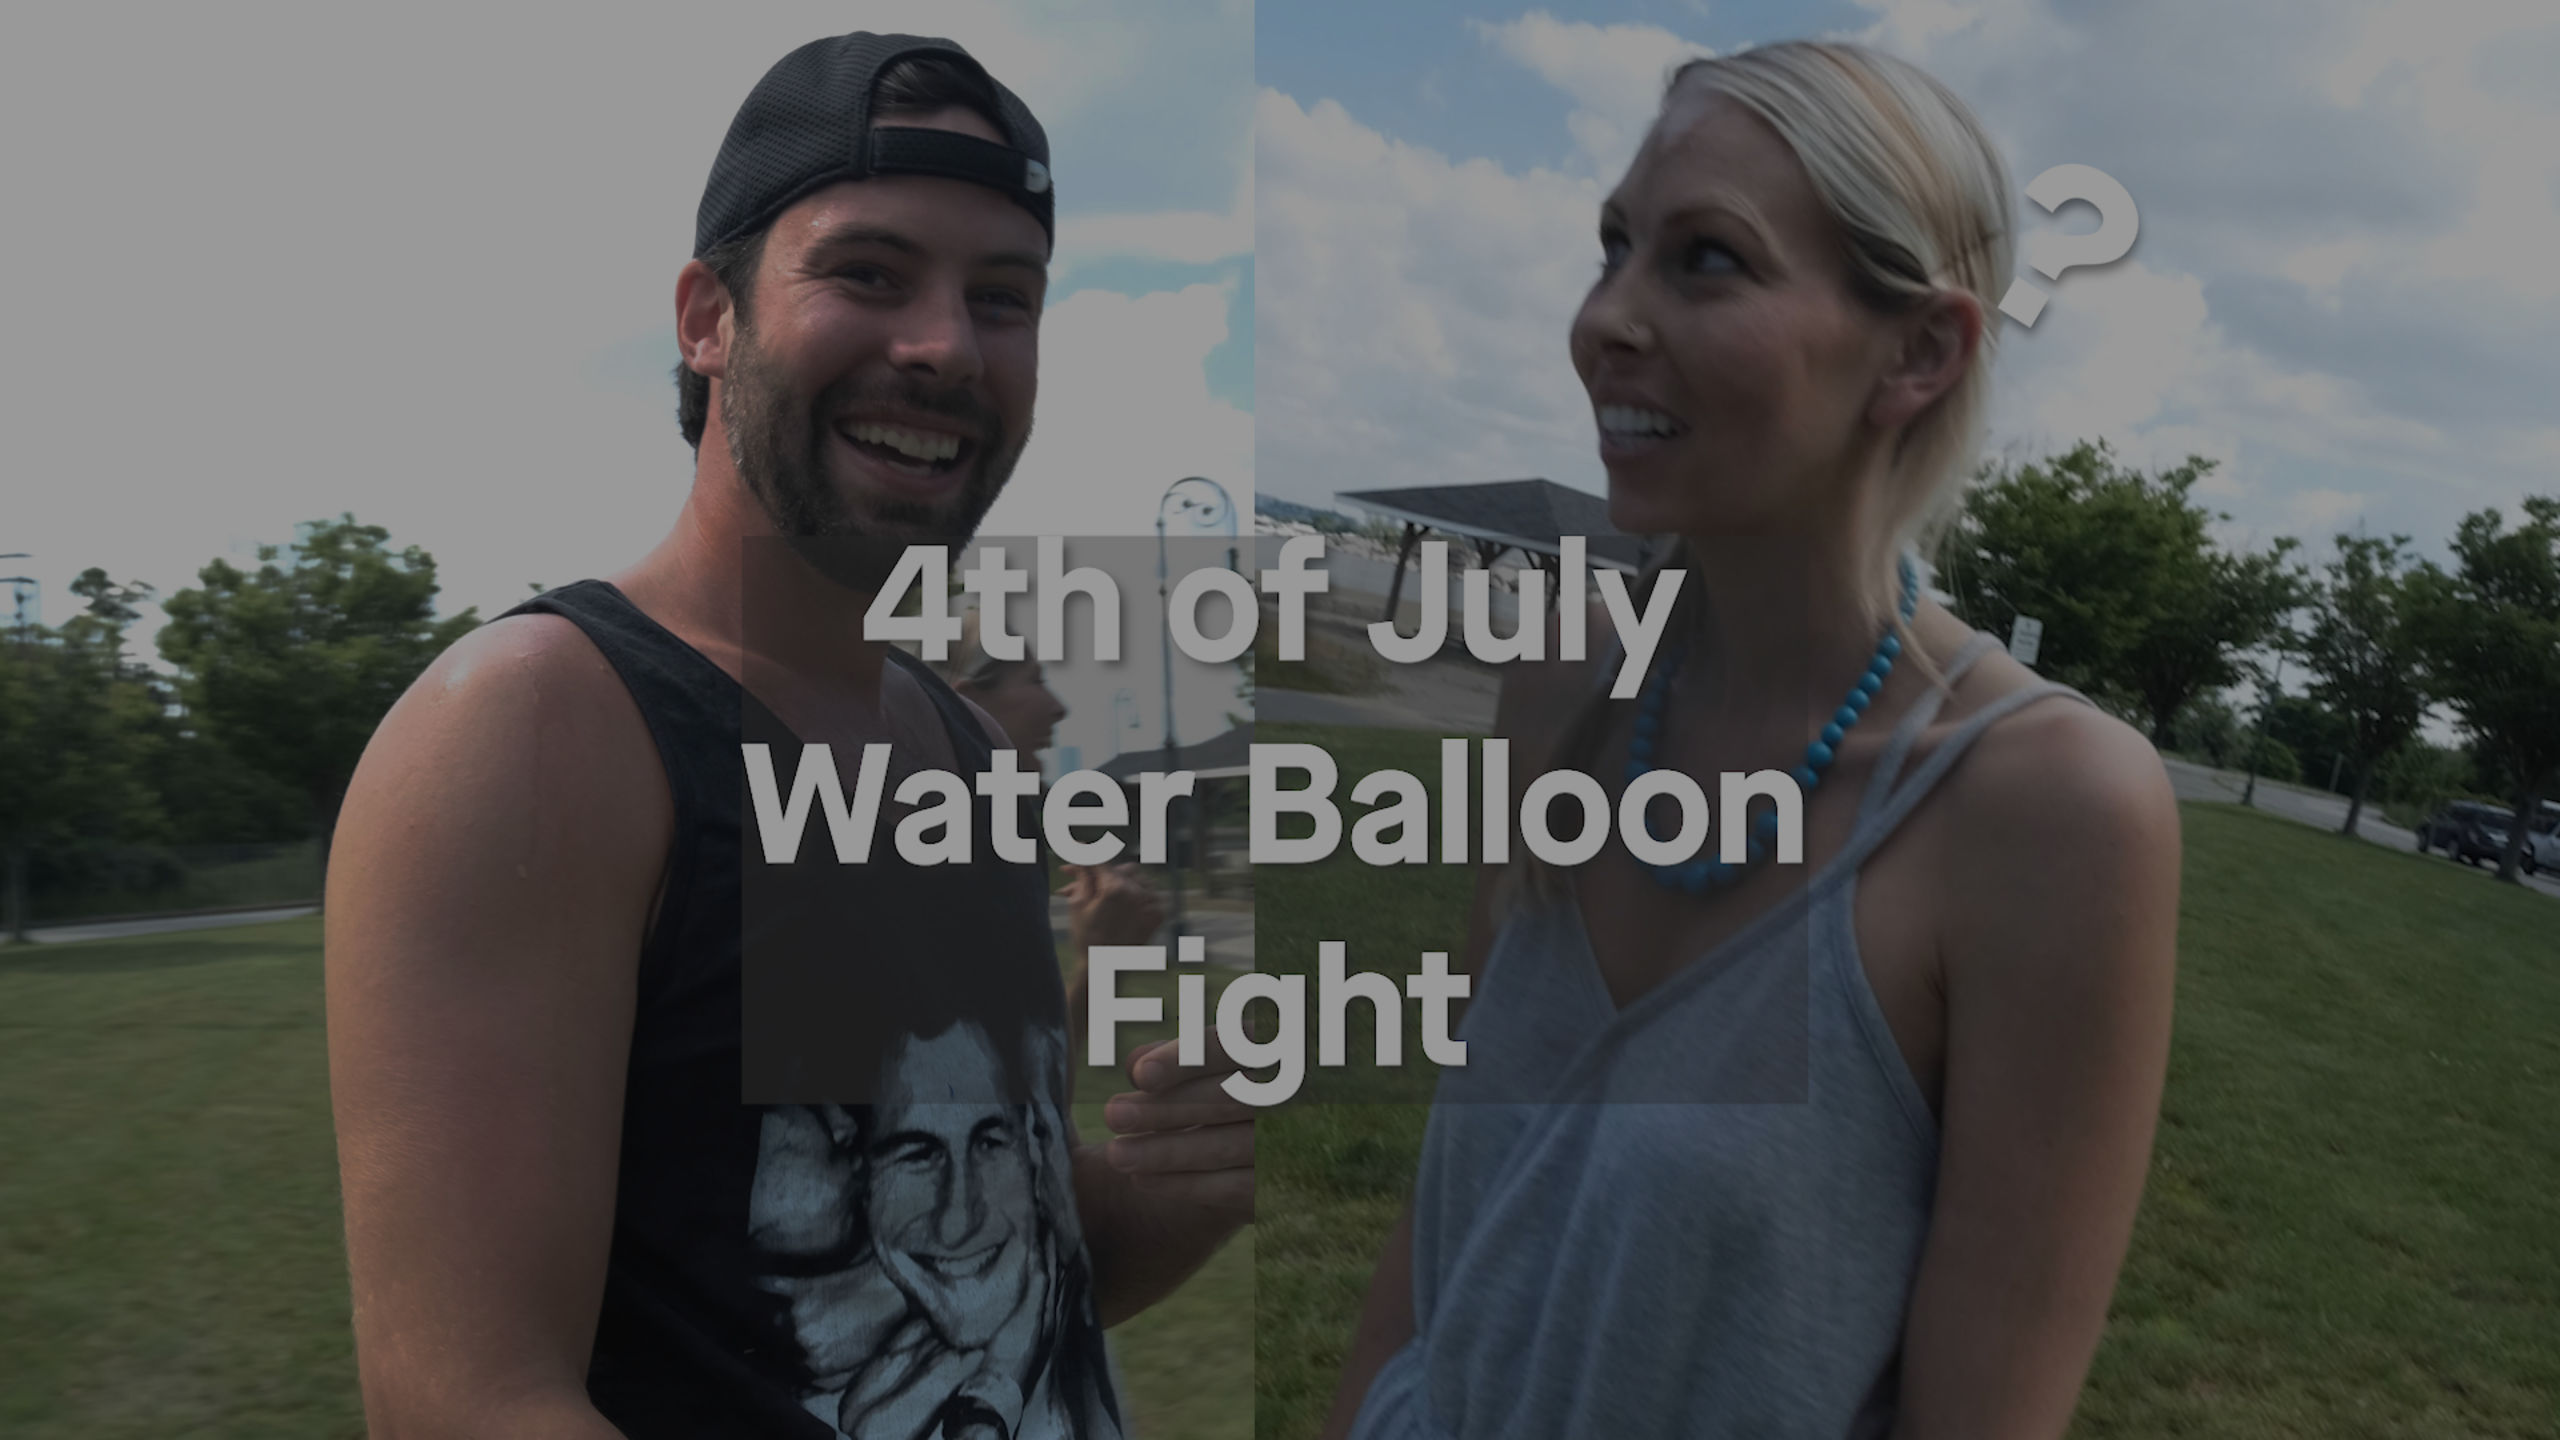 4th of July Water Balloon Fight